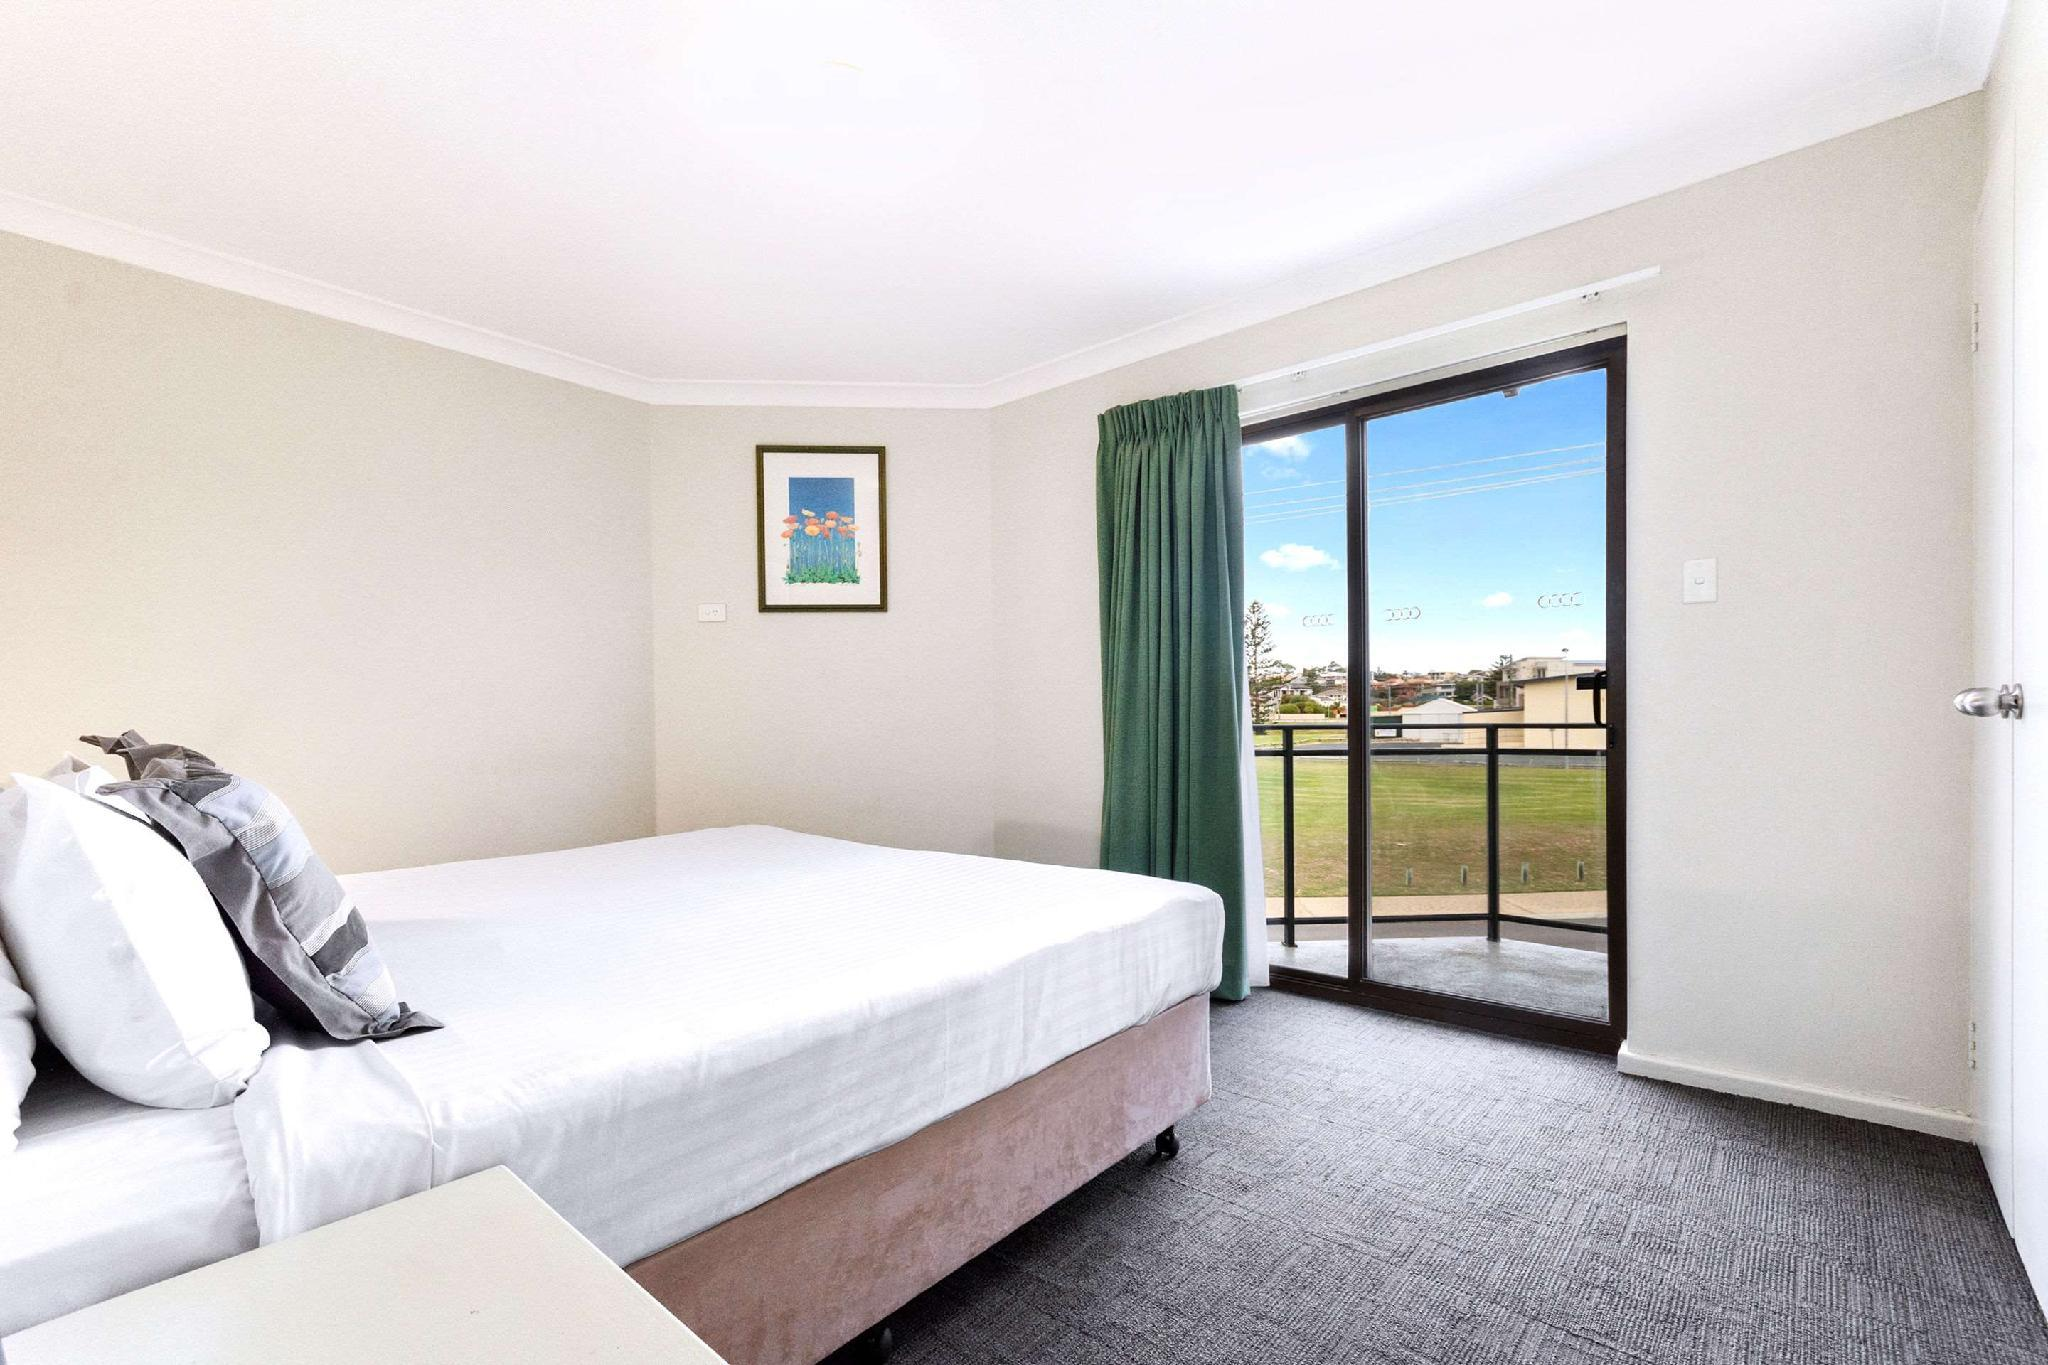 1 Queen Bed, 4 Single Beds, Suite, No Smoking, Accessible Room